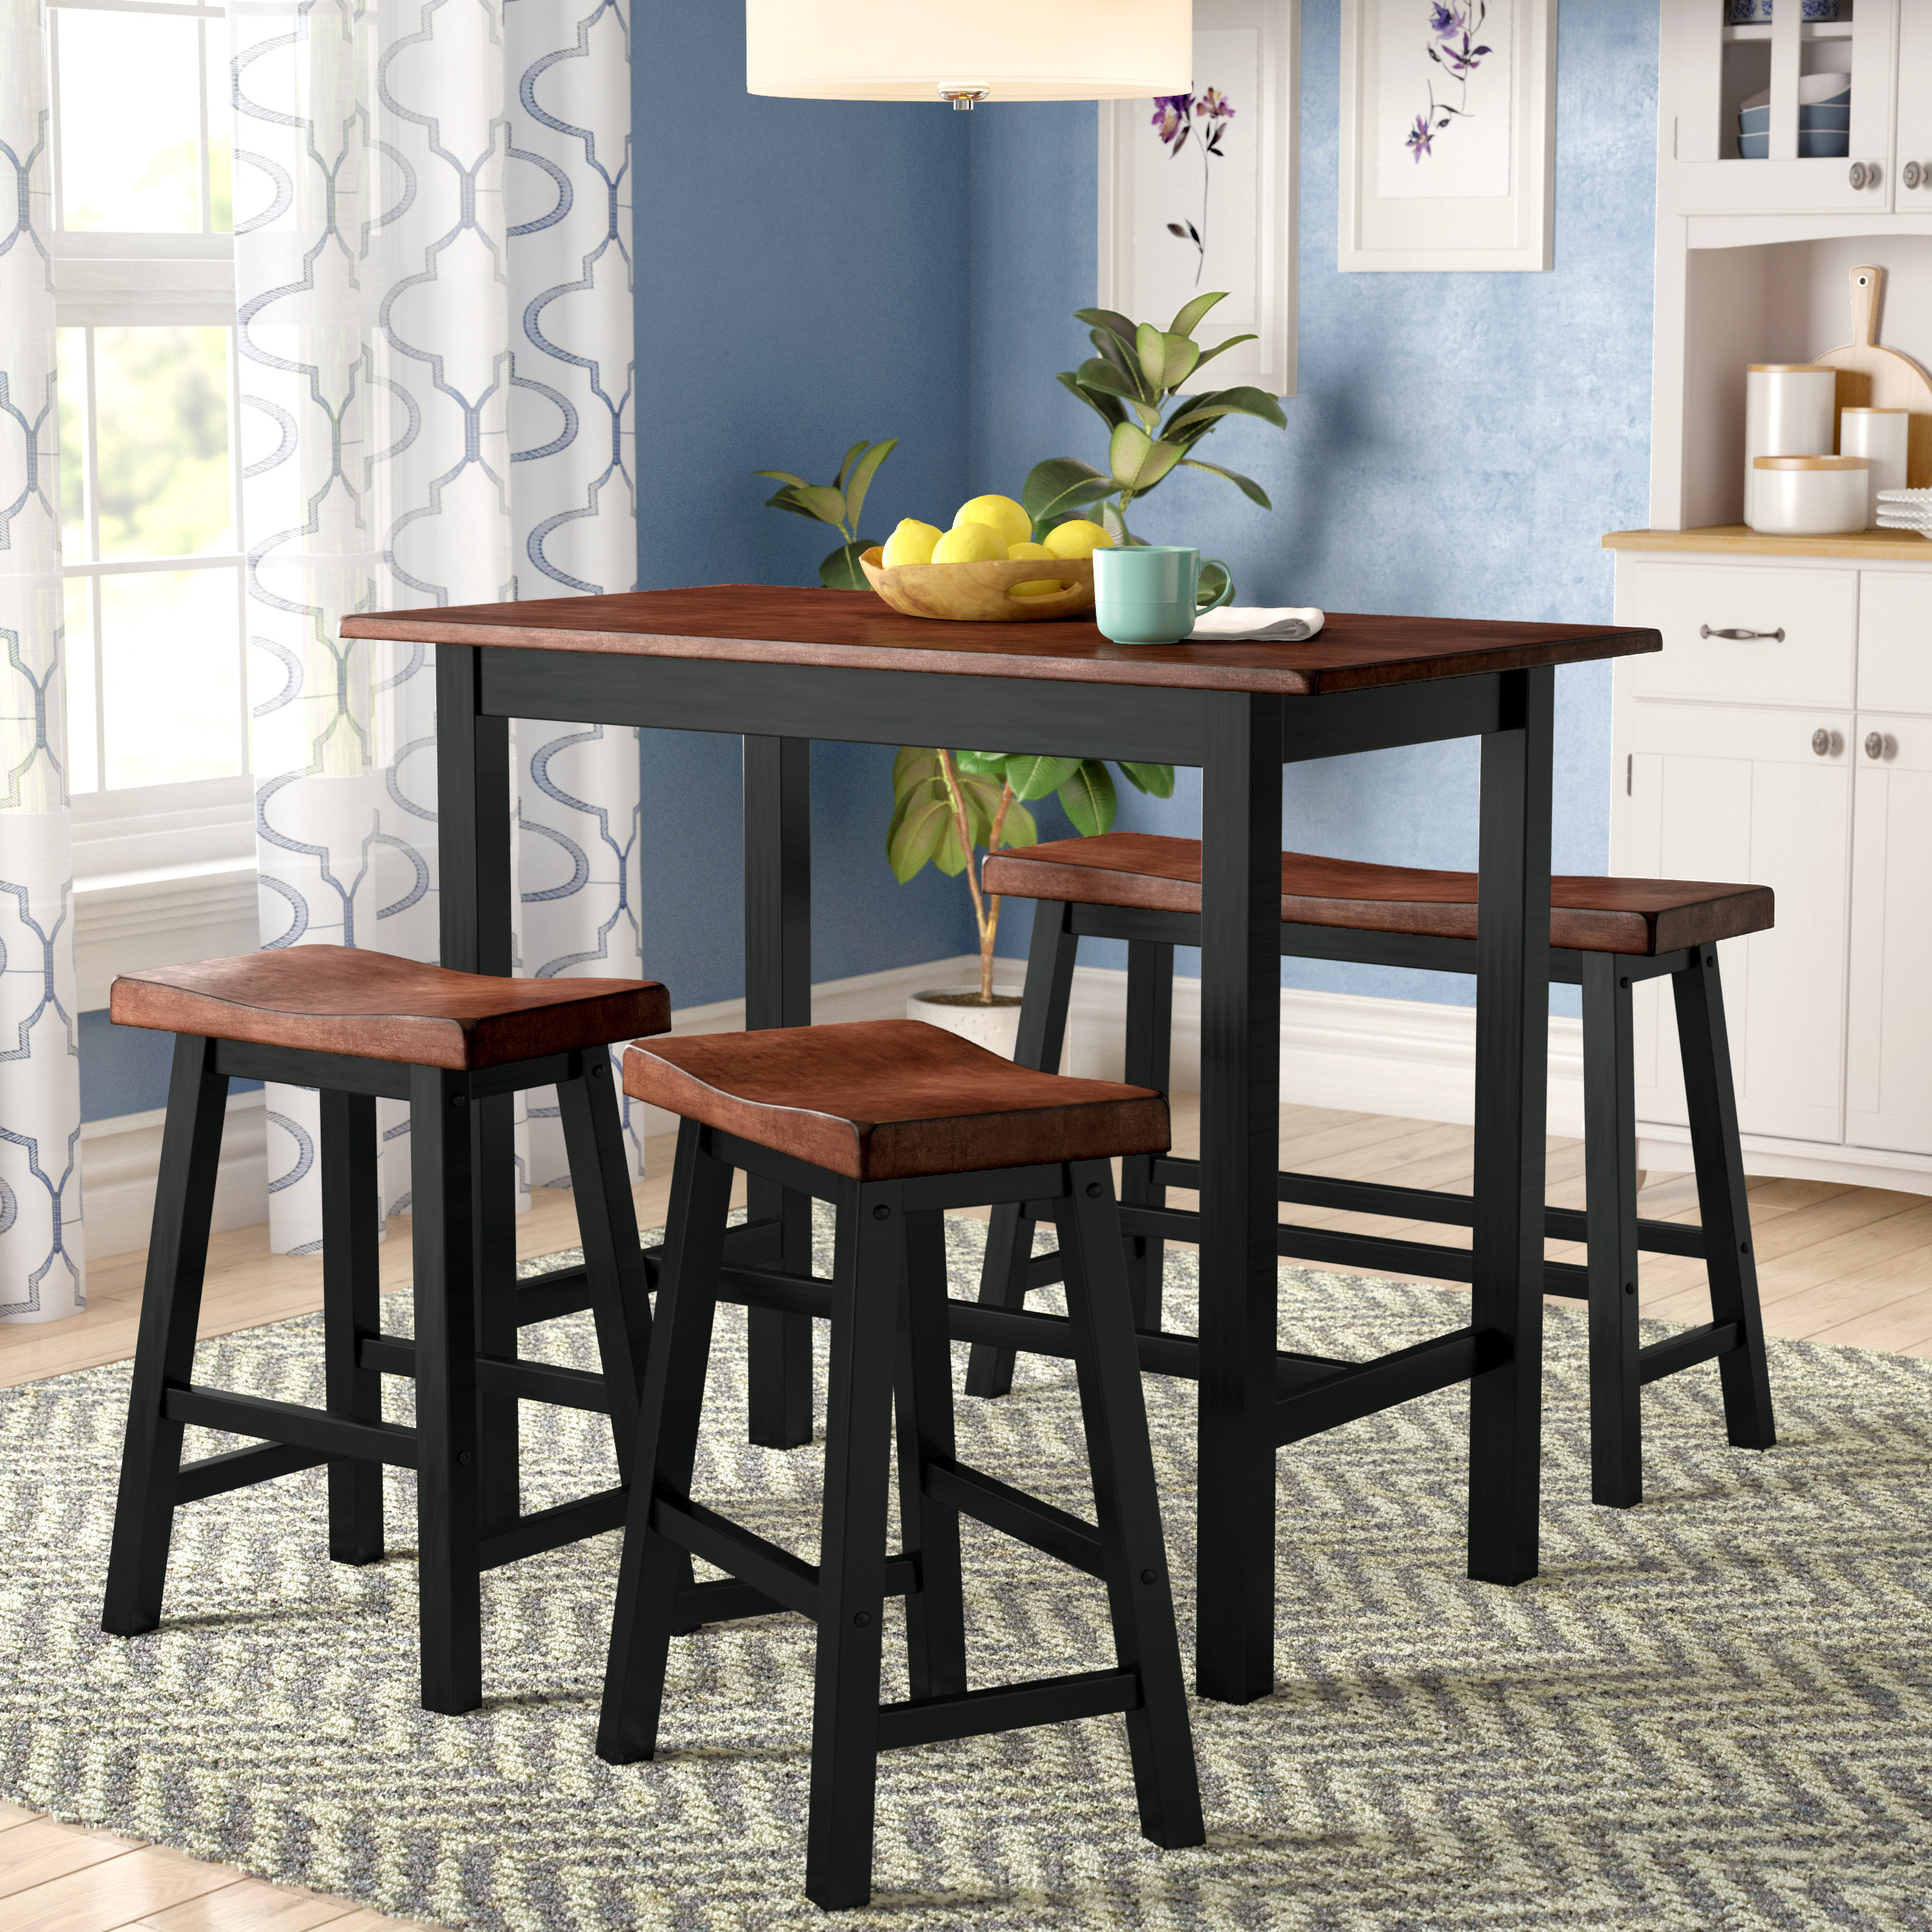 Kerley 4 Piece Dining Sets Pertaining To Favorite Winsted 4 Piece Counter Height Dining Set (View 7 of 20)